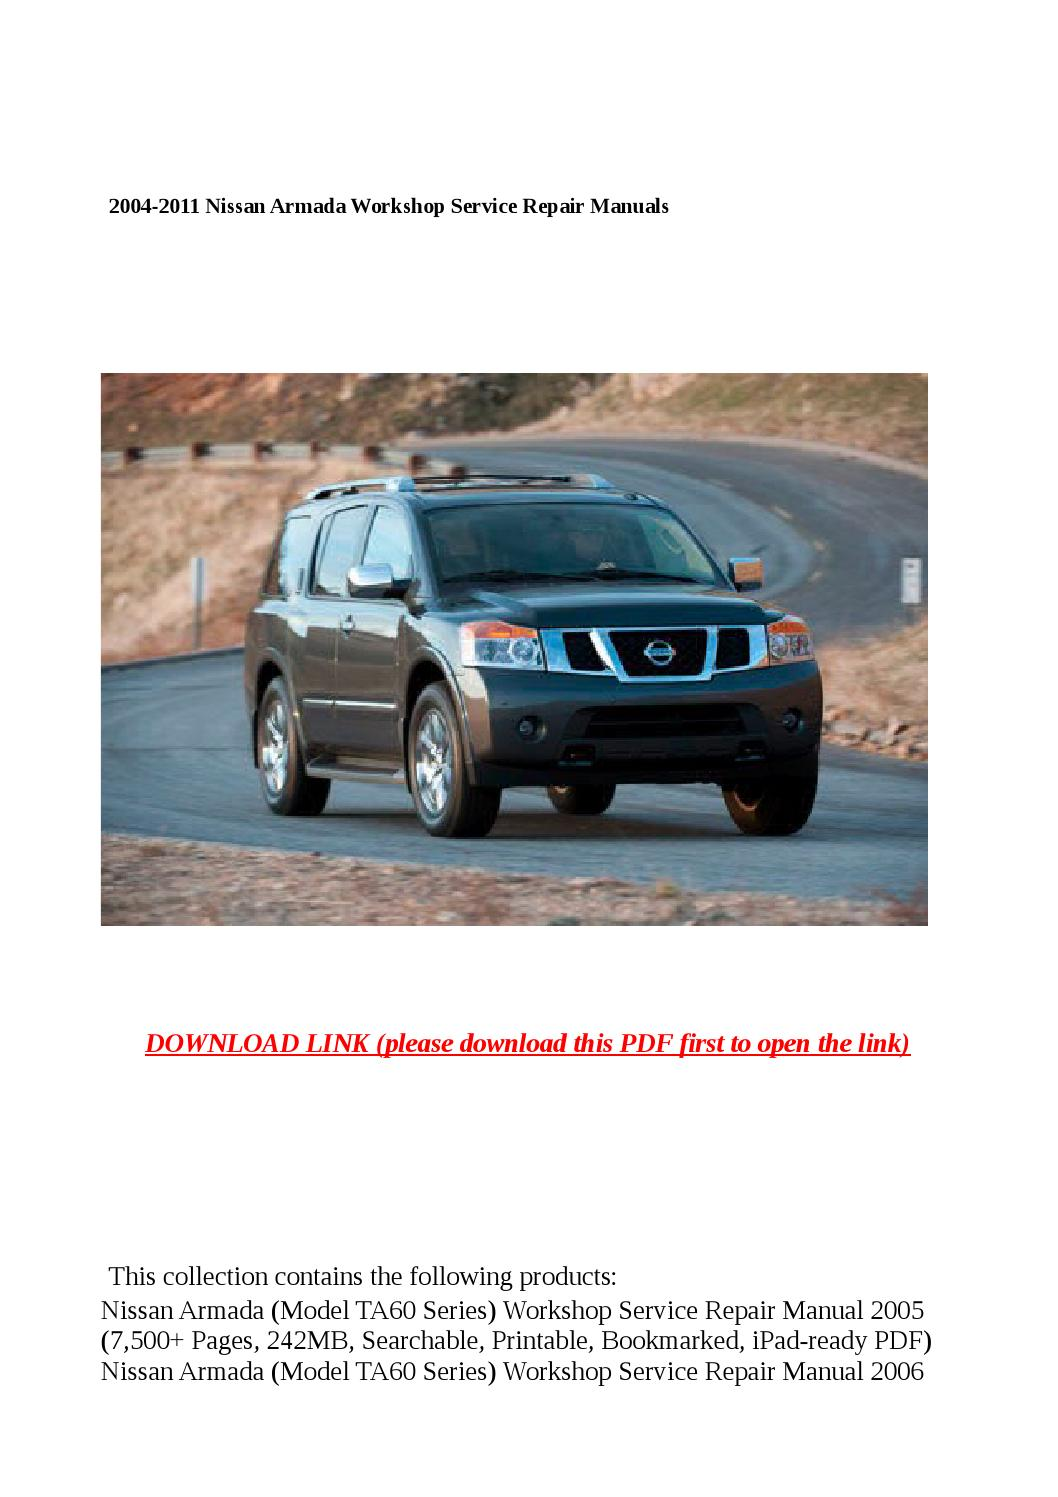 2004 2011 nissan armada workshop service repair manuals by. Black Bedroom Furniture Sets. Home Design Ideas